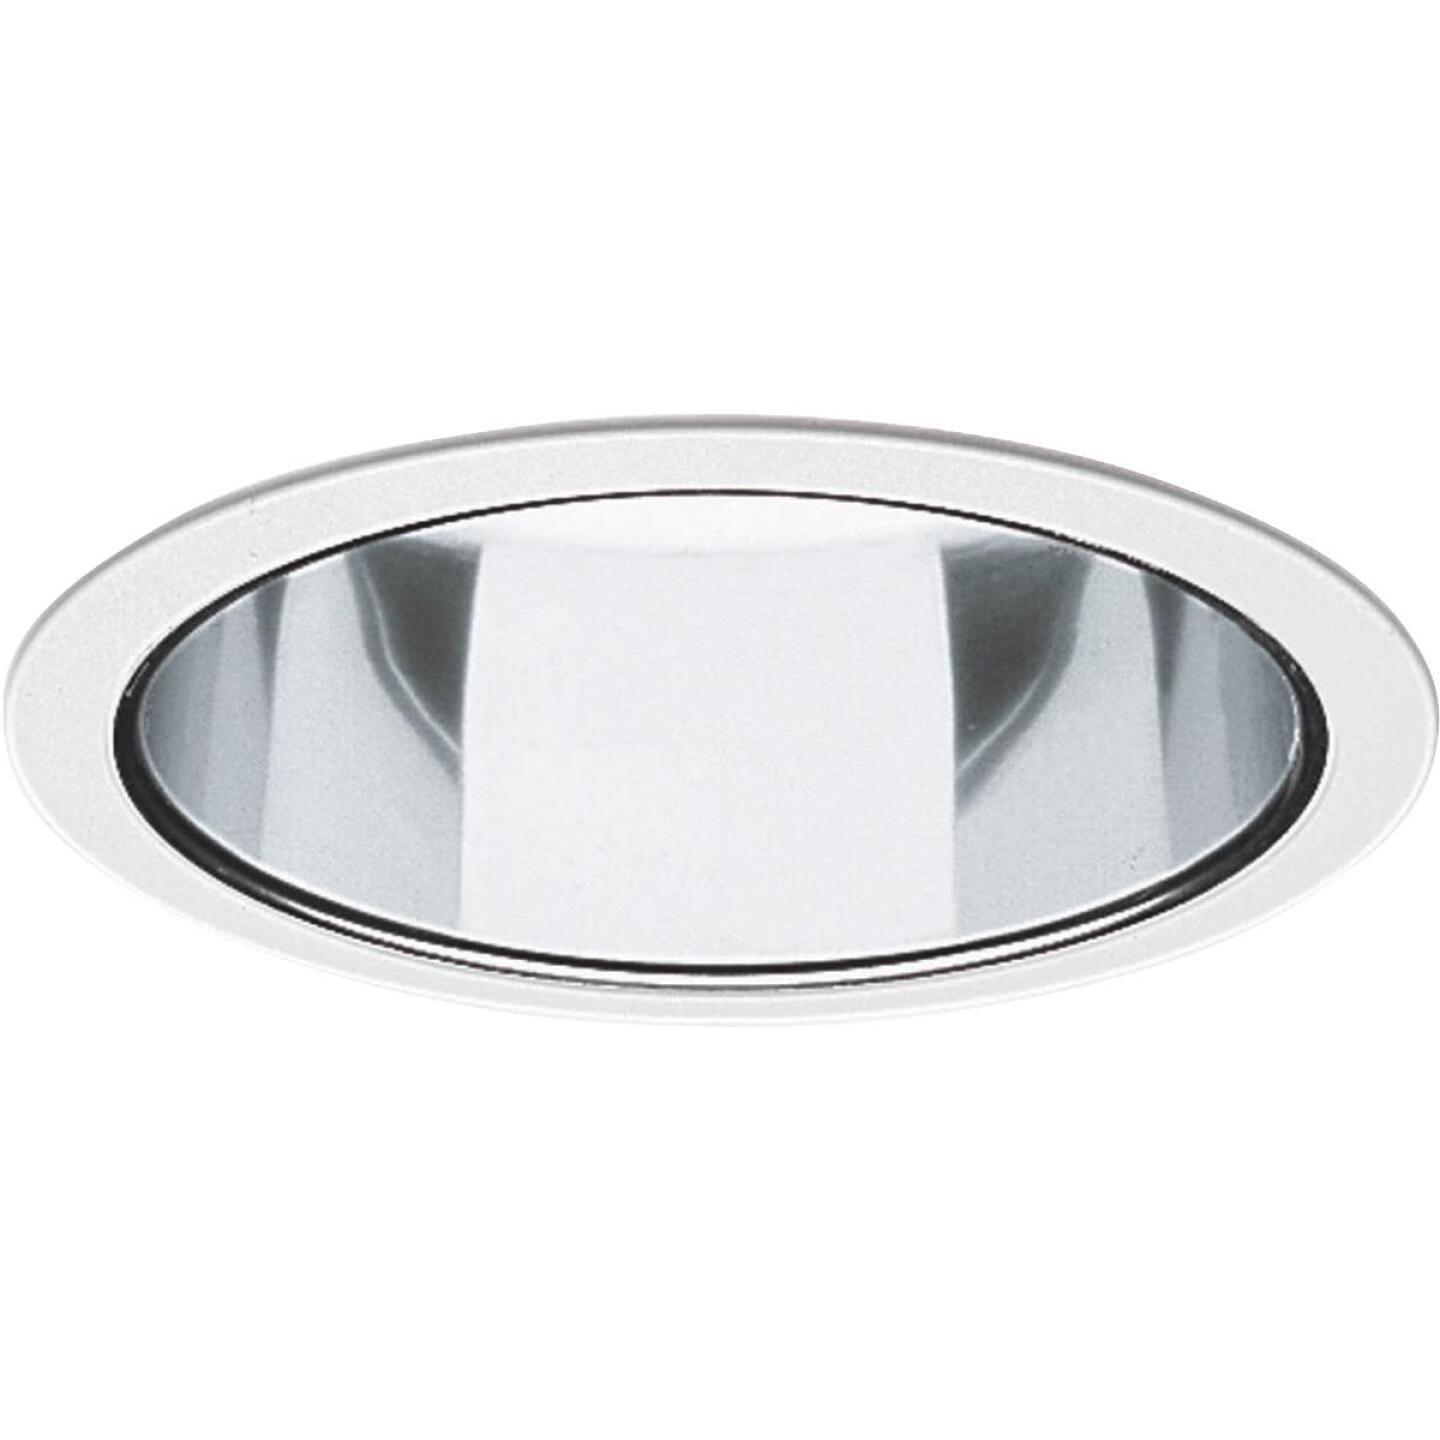 Thomas 6 In. White Trim w/Clear Reflector Recessed Fixture Trim Image 1